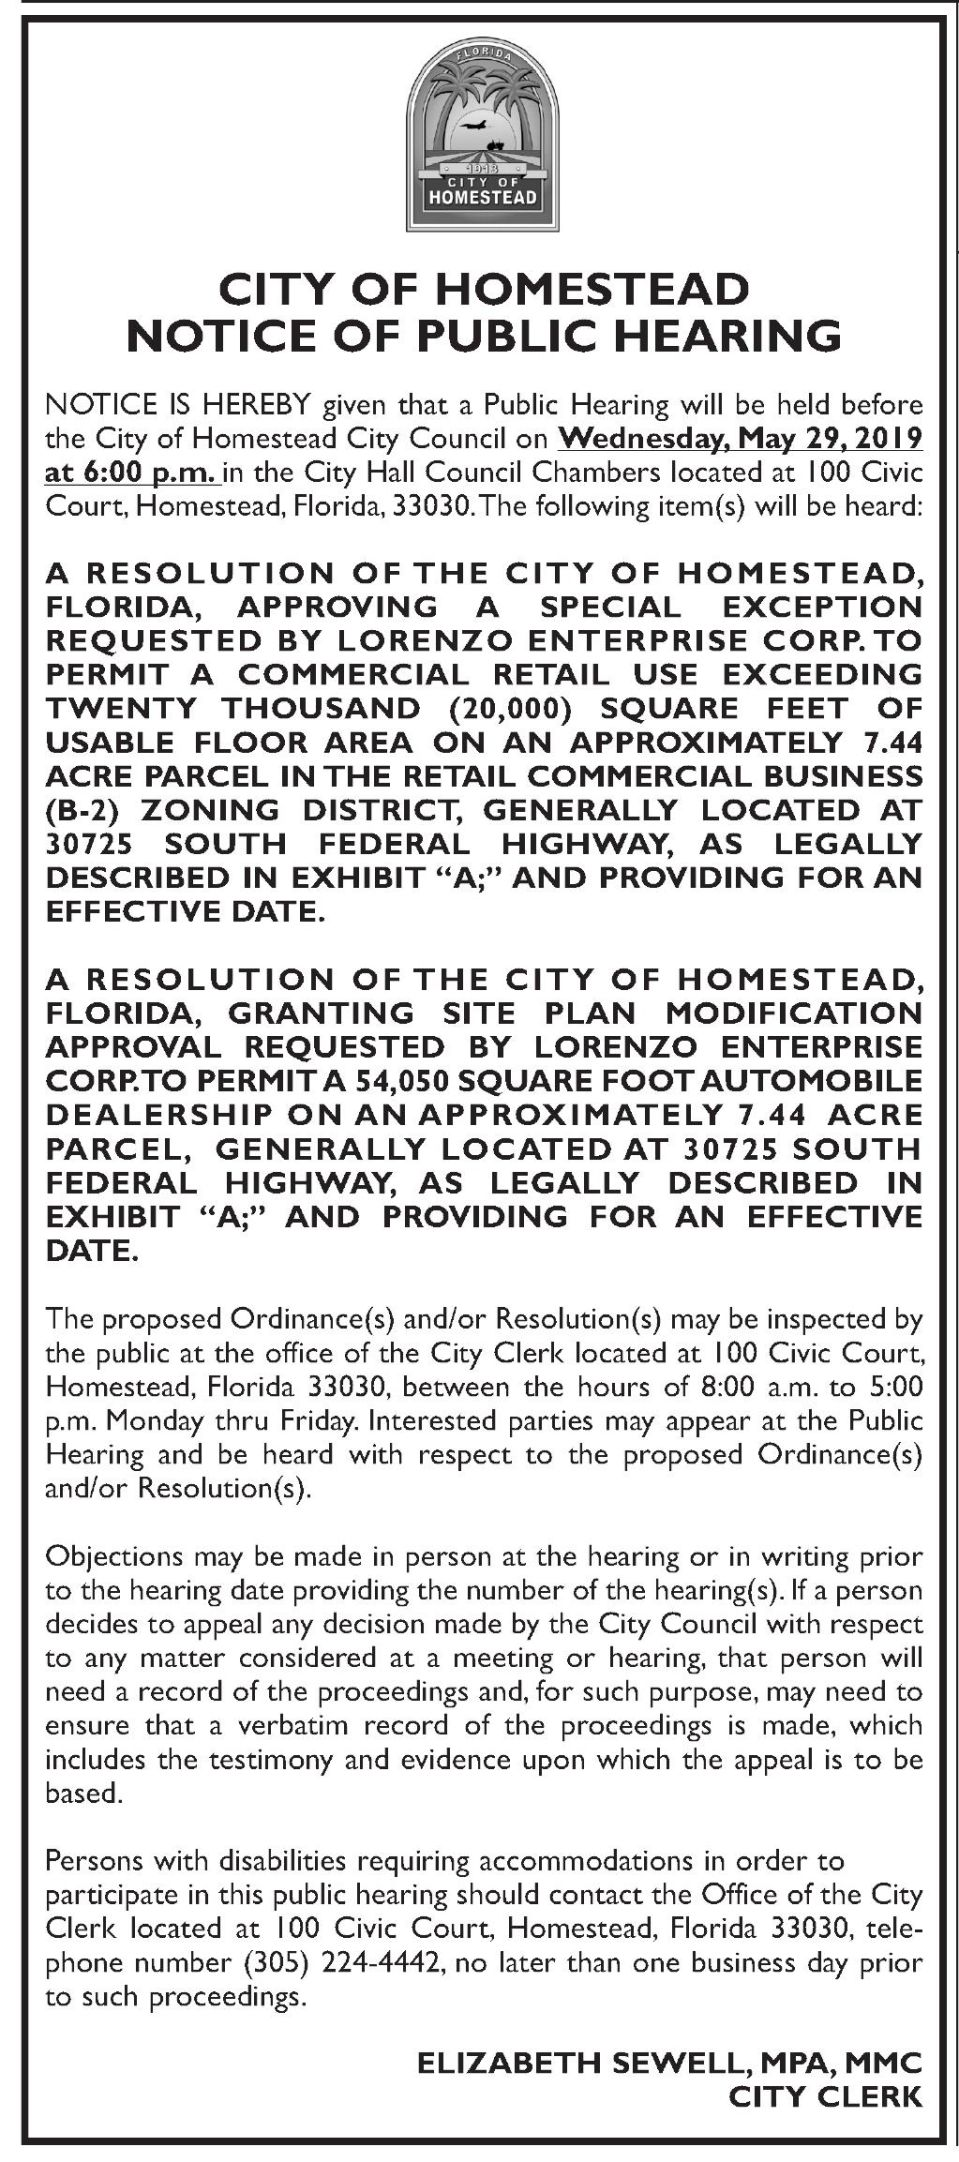 City of Homestead - Notice of Public Hearing